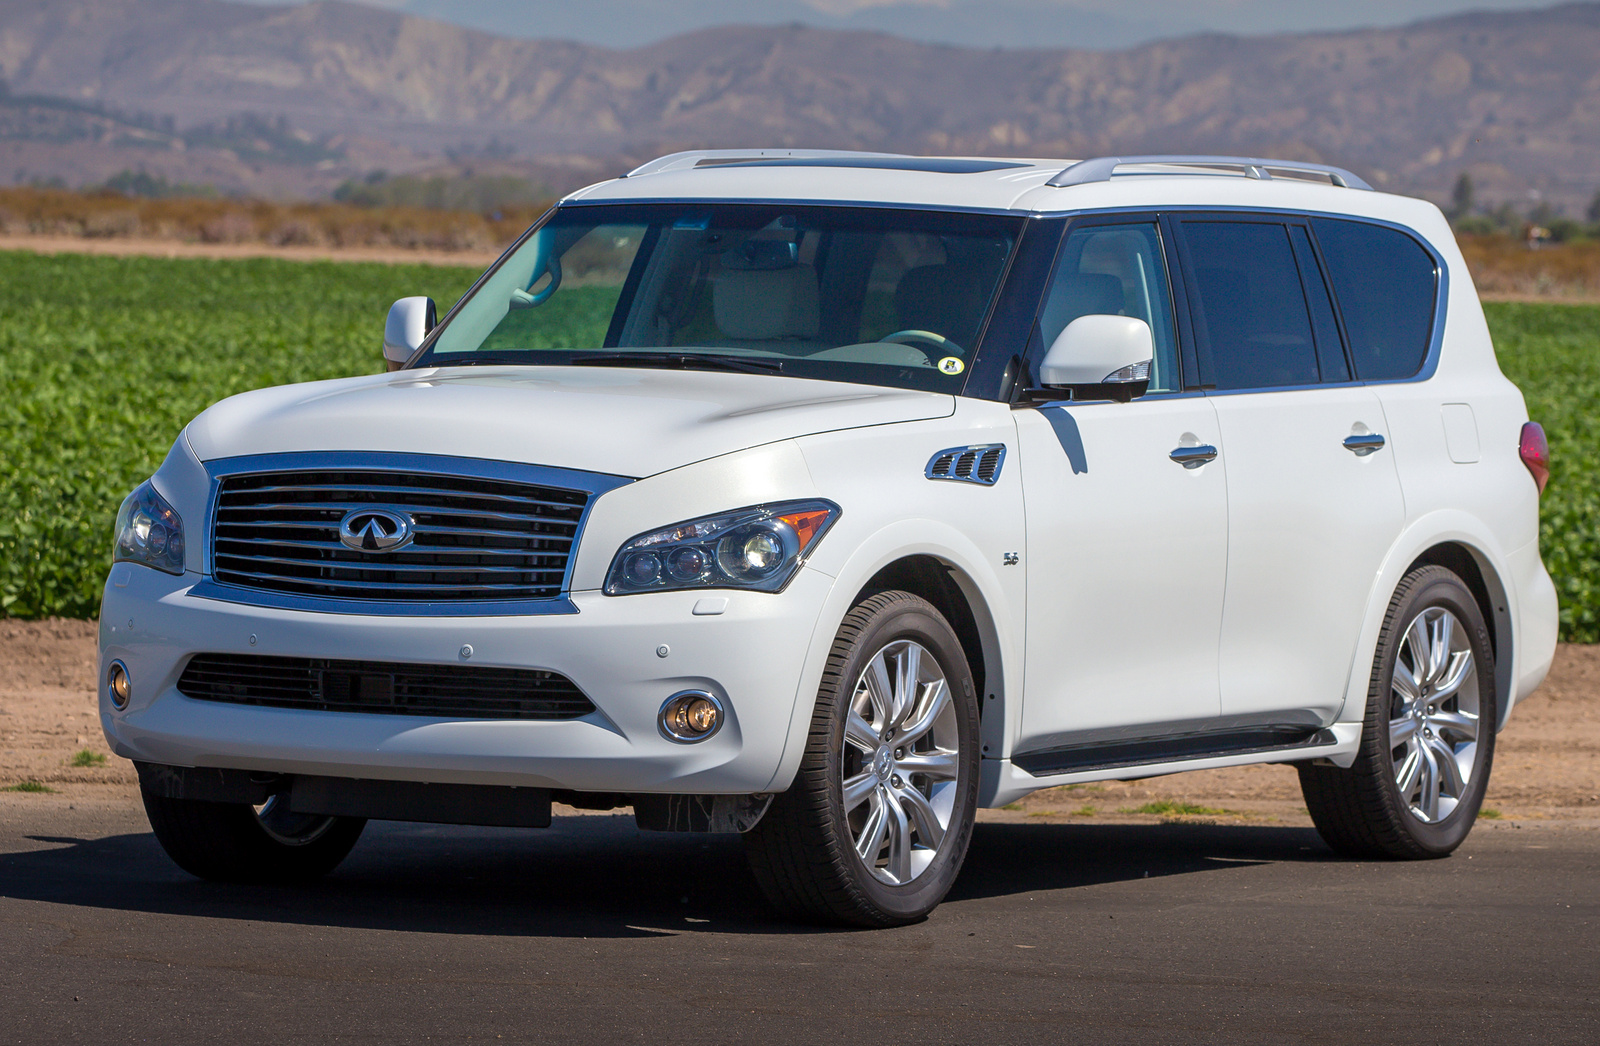 2014 infiniti qx80 current models drive away 2day. Black Bedroom Furniture Sets. Home Design Ideas